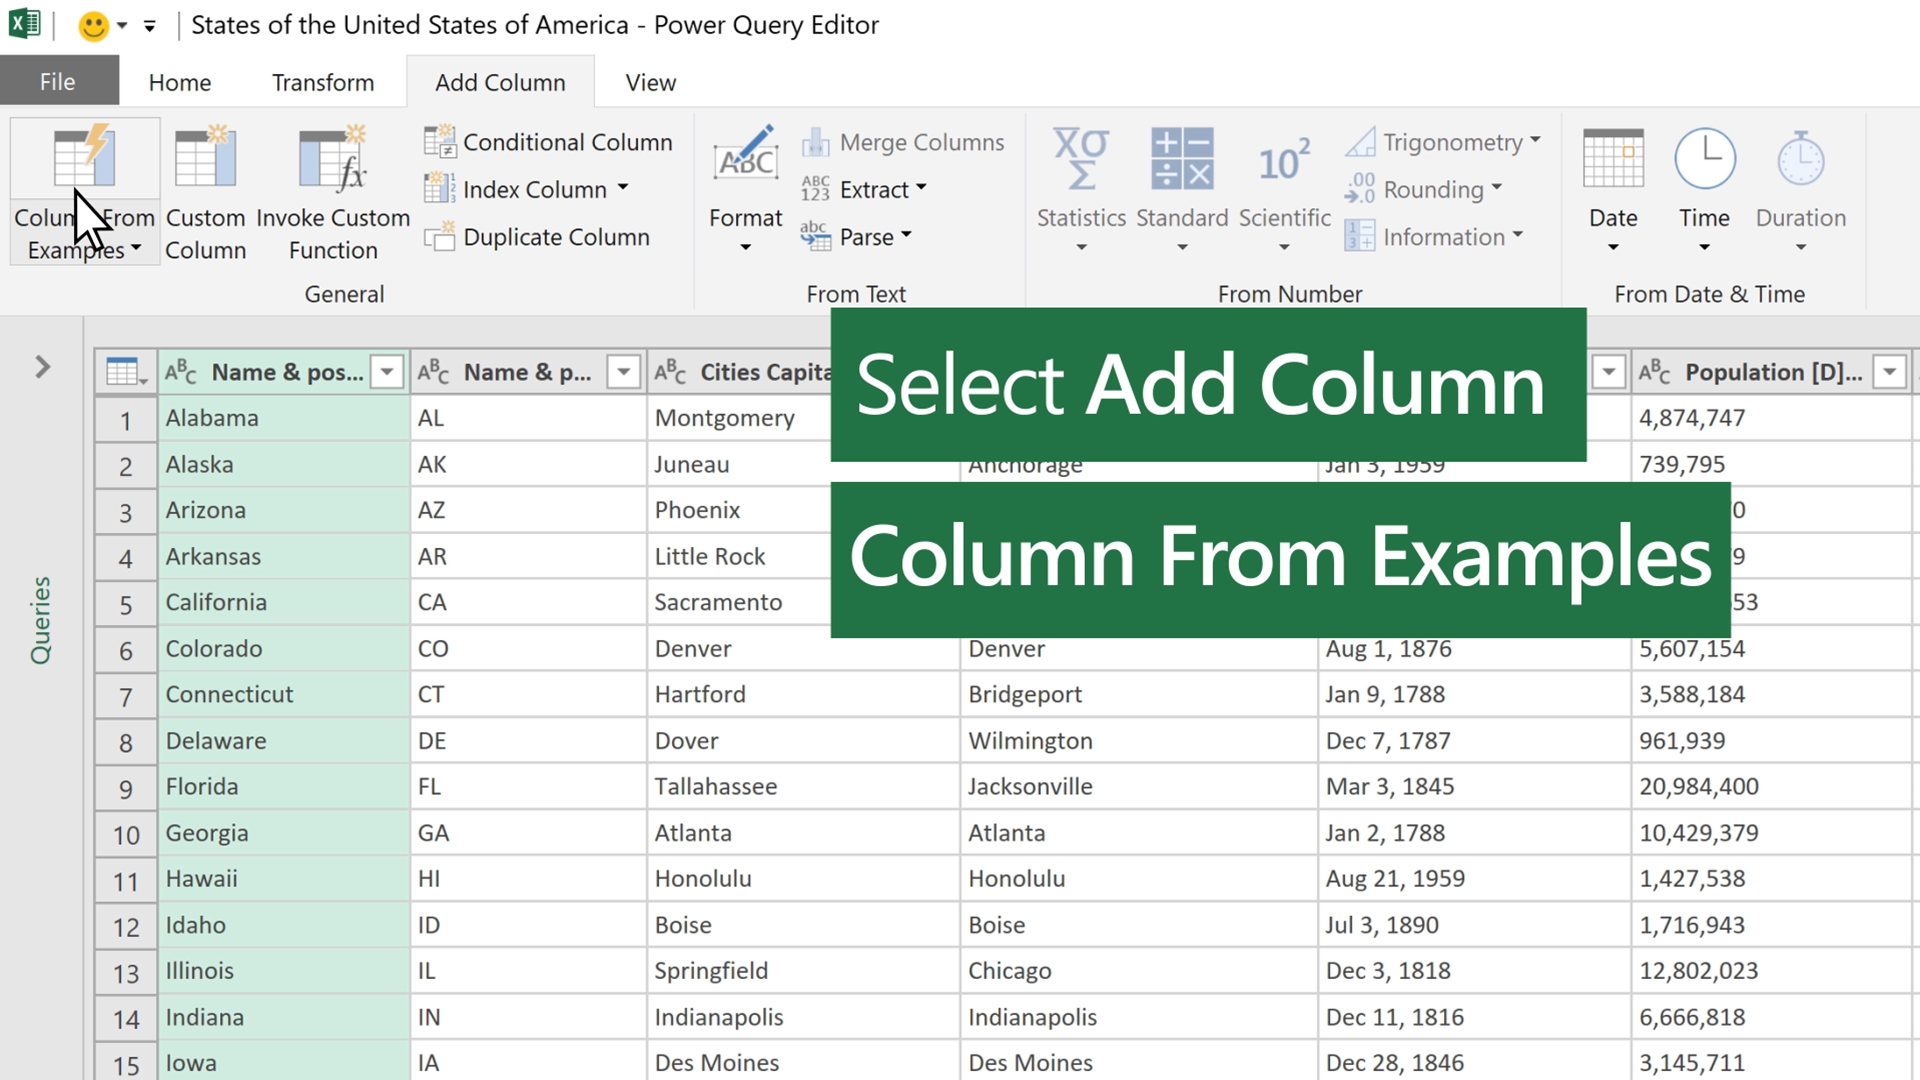 Add a column from an example